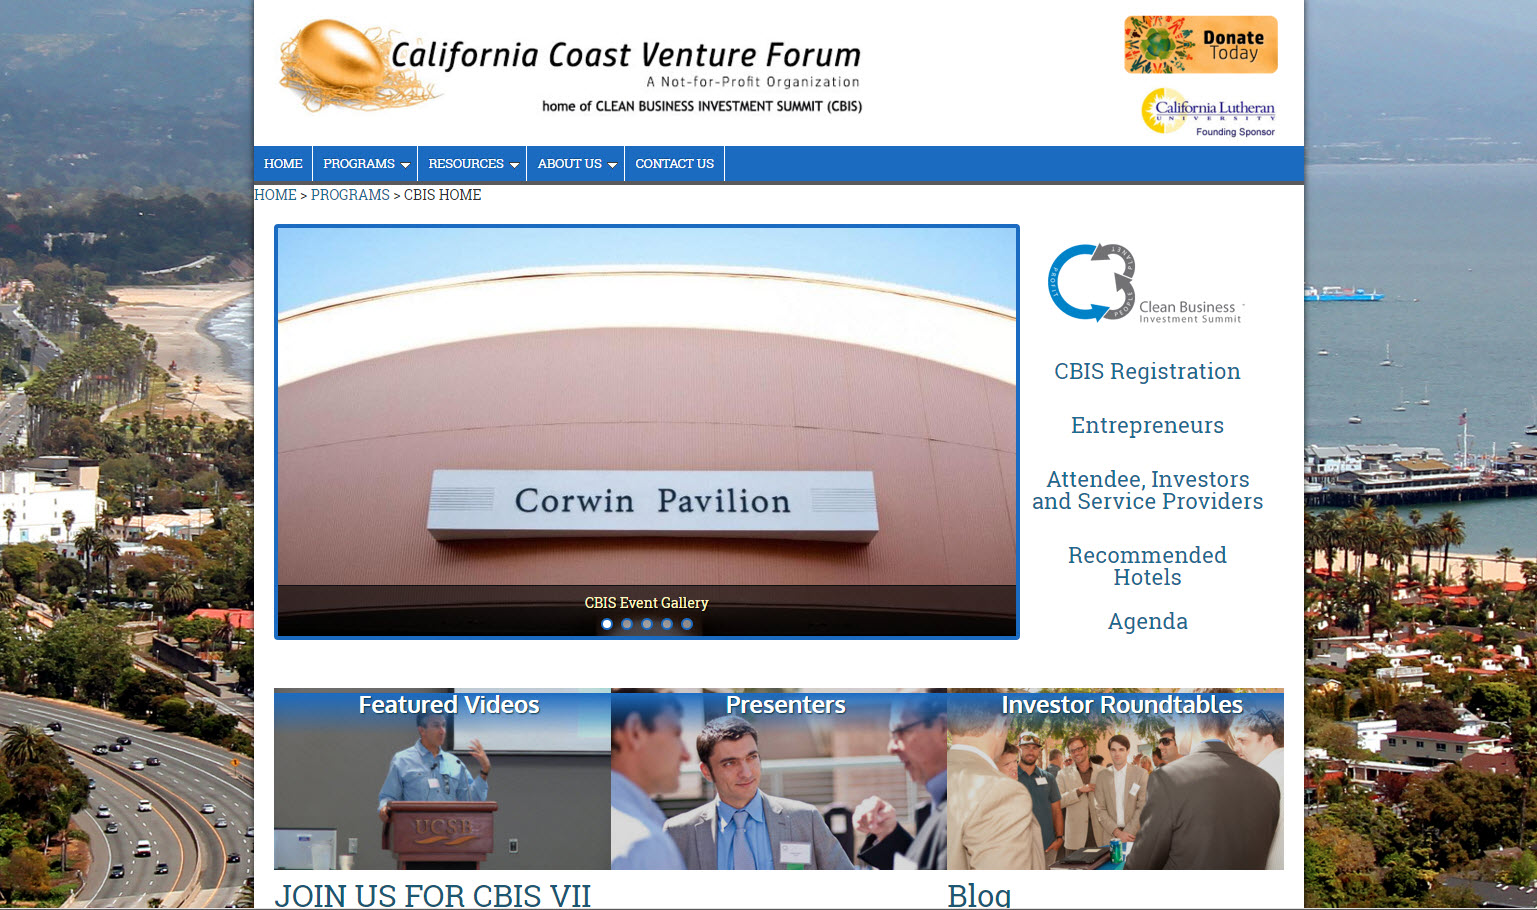 Clean Business Investment Summit - California Coast Venture Forum